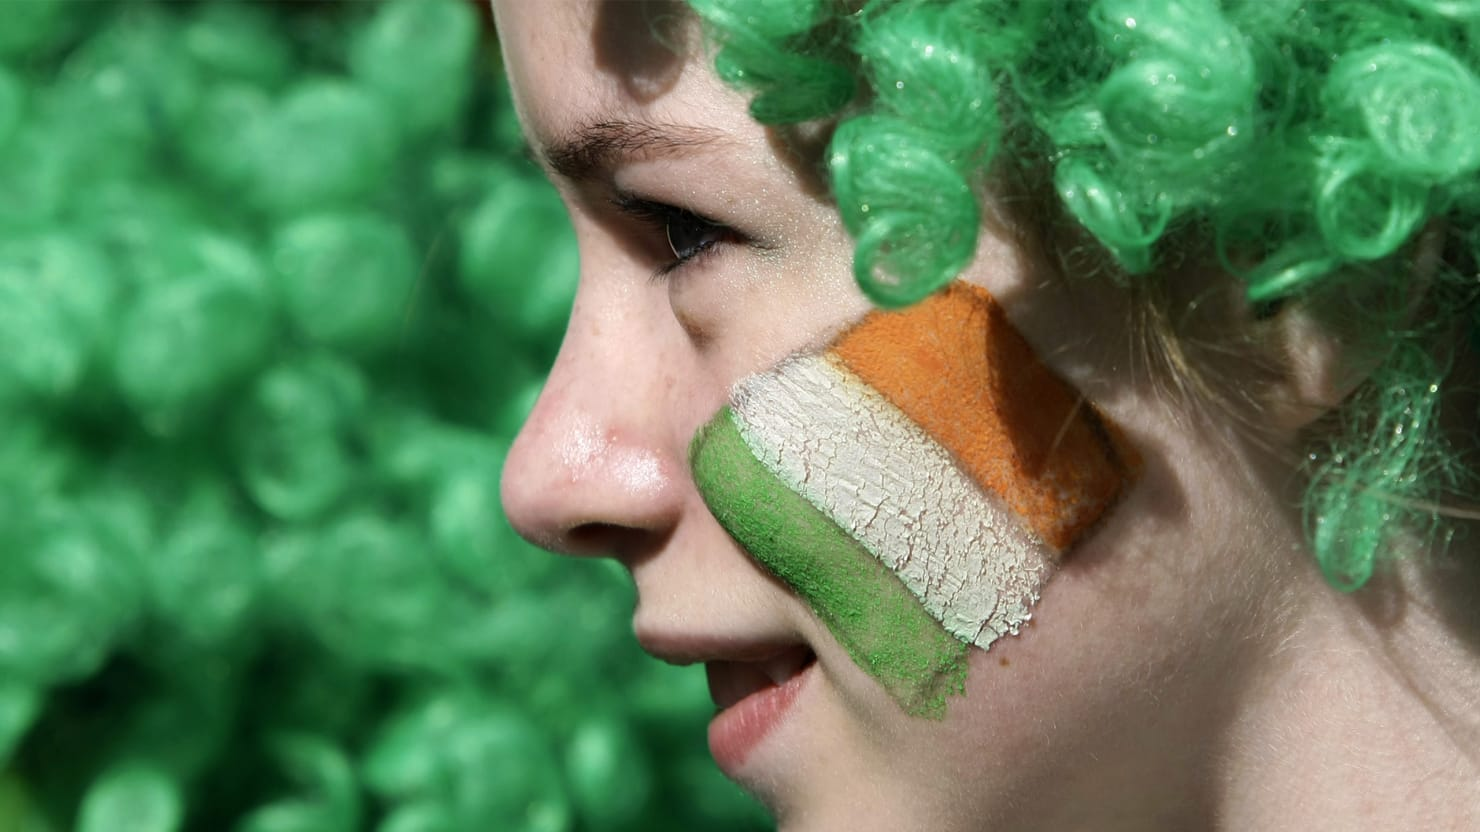 Ireland's Big Gay Turnaround